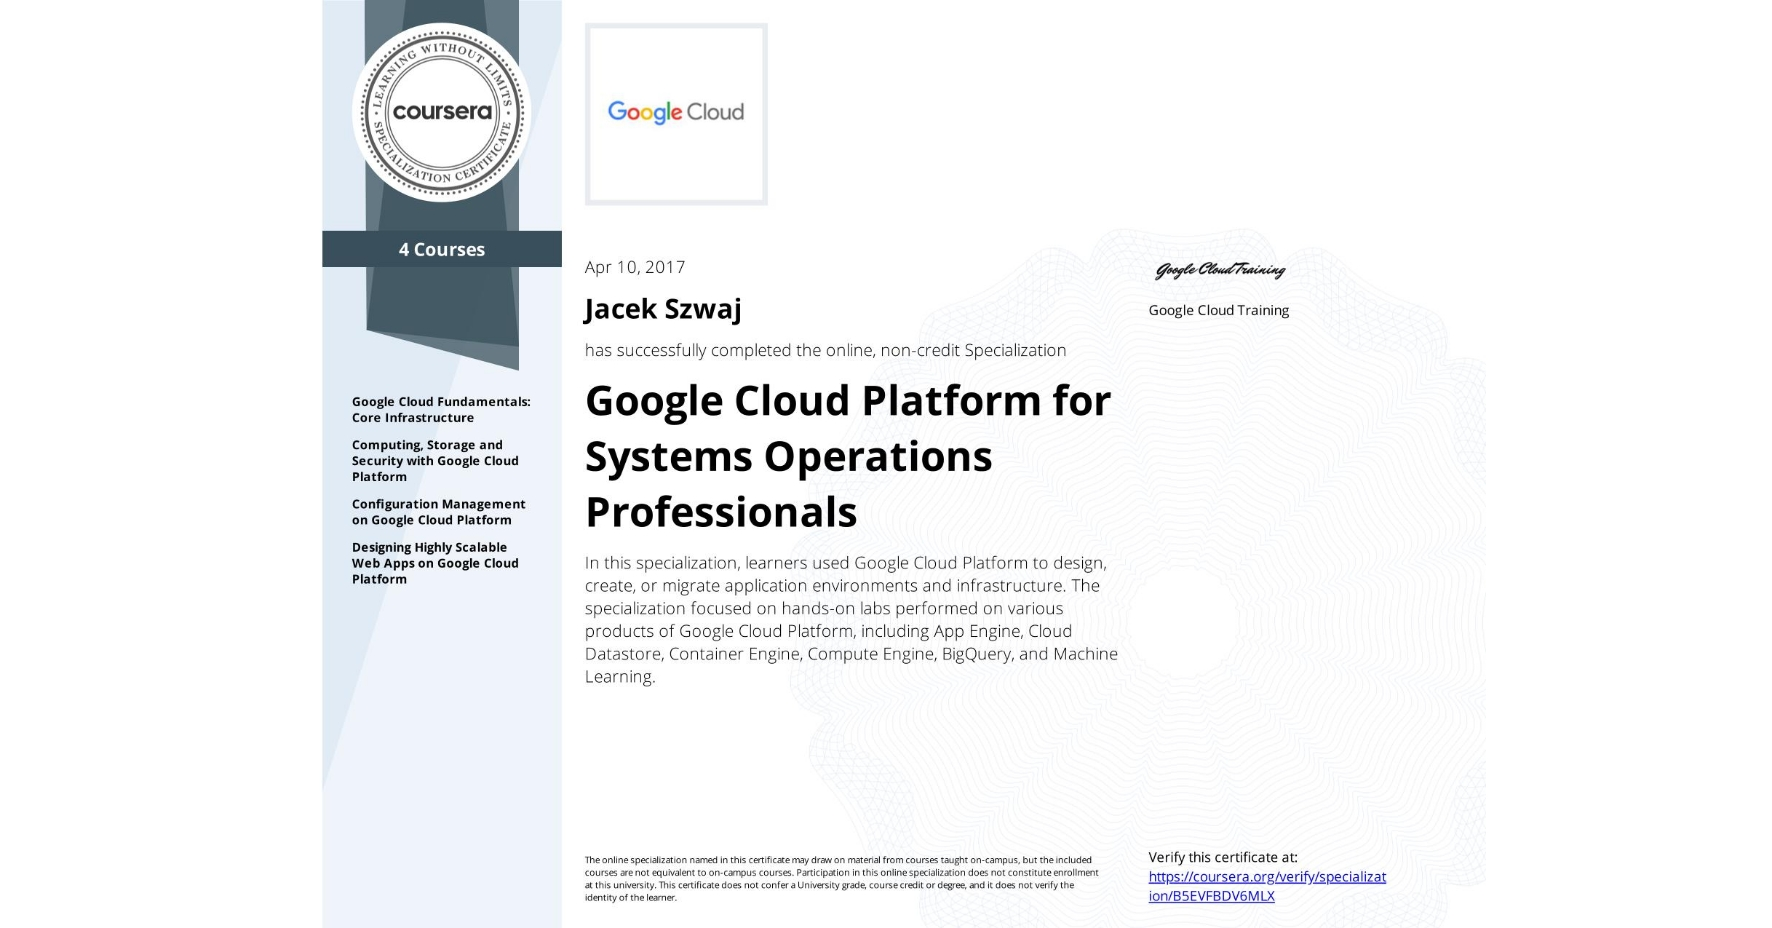 View certificate for Jacek Szwaj, Google Cloud Platform for Systems Operations Professionals, offered through Coursera. In this specialization, learners used Google Cloud Platform to design, create, or migrate application environments and infrastructure. The specialization focused on hands-on labs performed on various products of Google Cloud Platform, including App Engine, Cloud Datastore, Container Engine, Compute Engine, BigQuery, and Machine Learning.